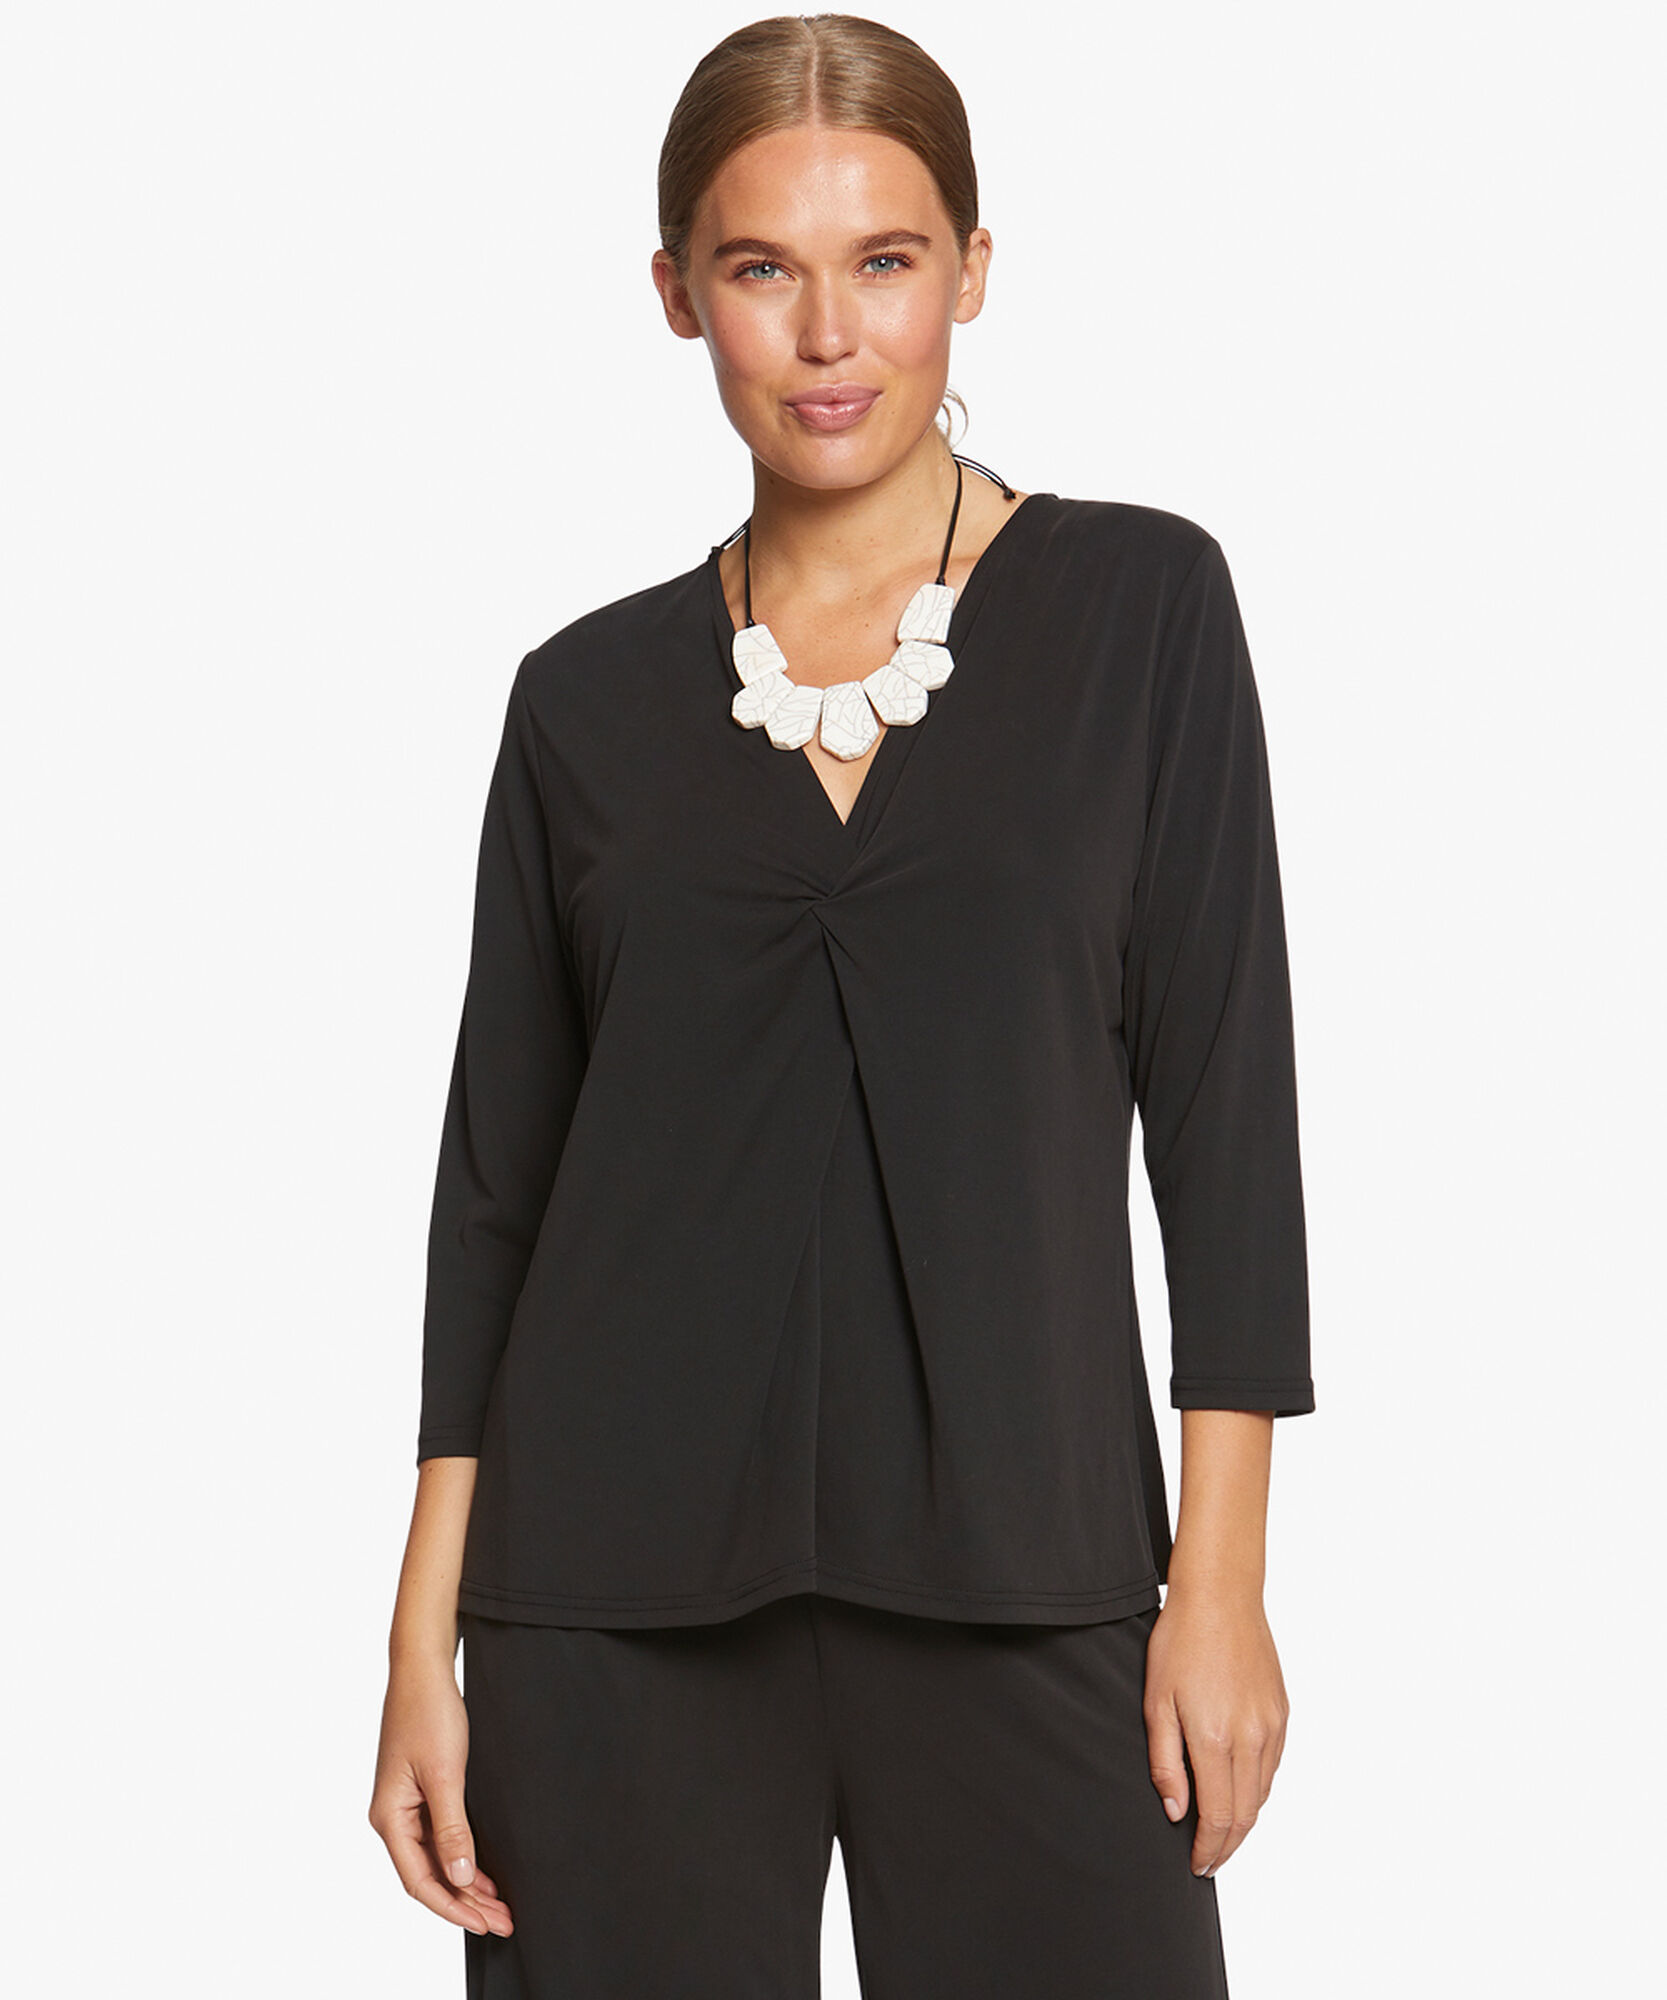 BABUSKA TOP, Black, hi-res